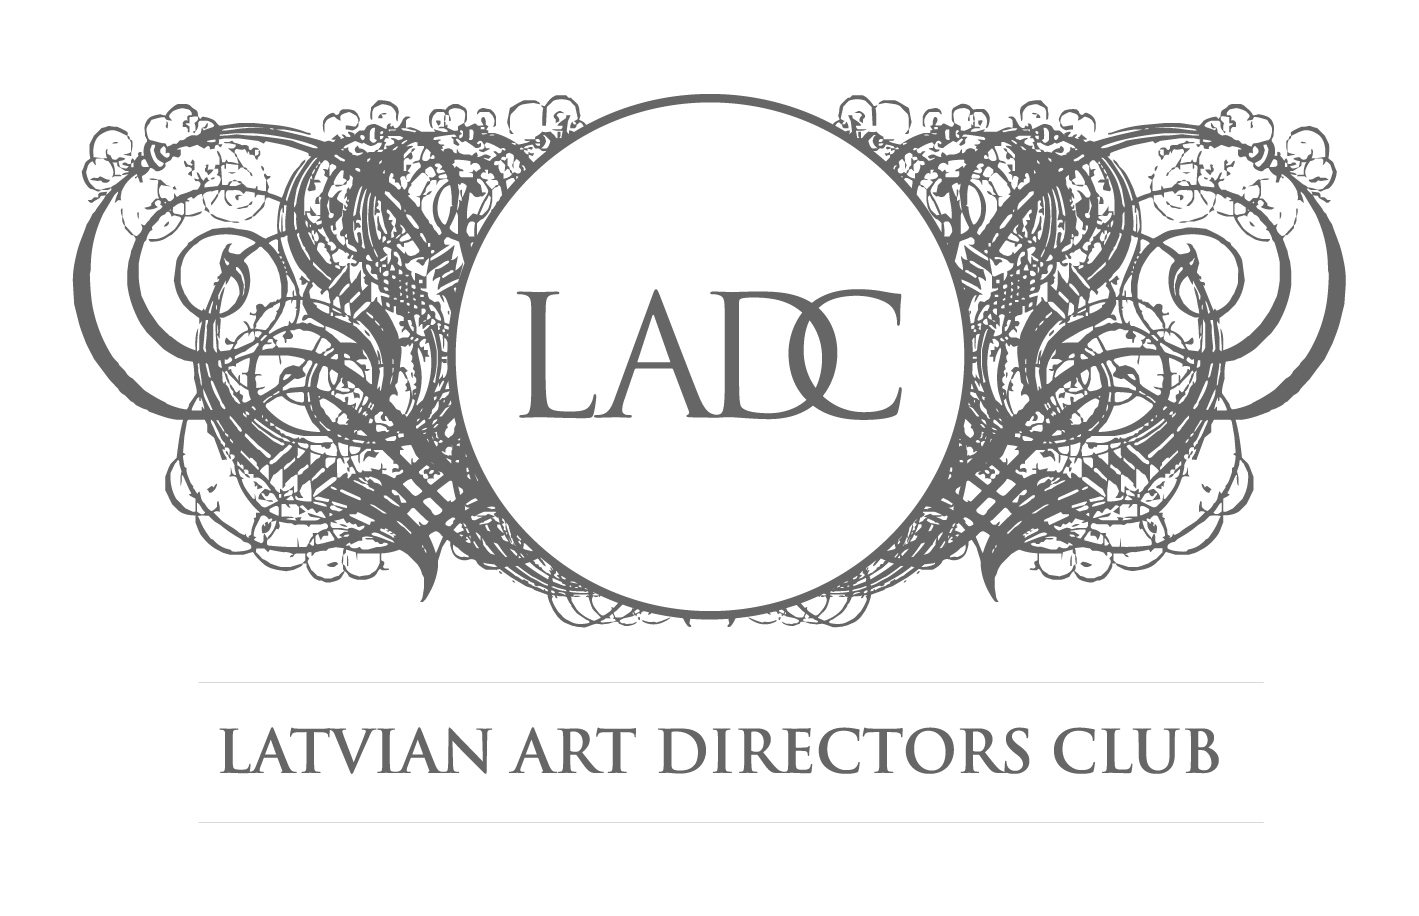 Deep White becomes a member of the Latvian Art Directors Club